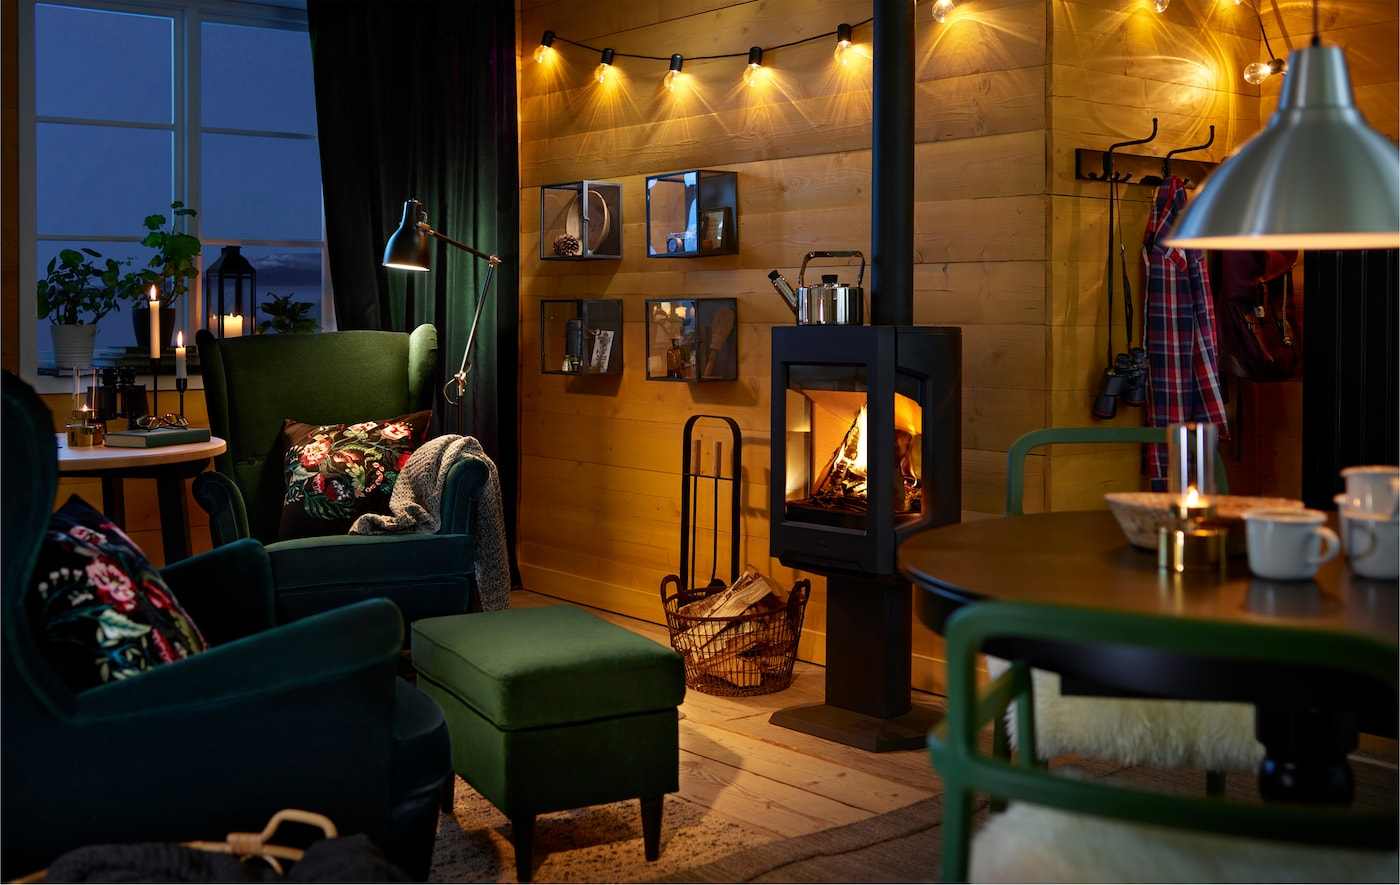 Make winter the cosiest of all seasons with intimate lighting and warm blankets to curl up under. Here are some ideas.